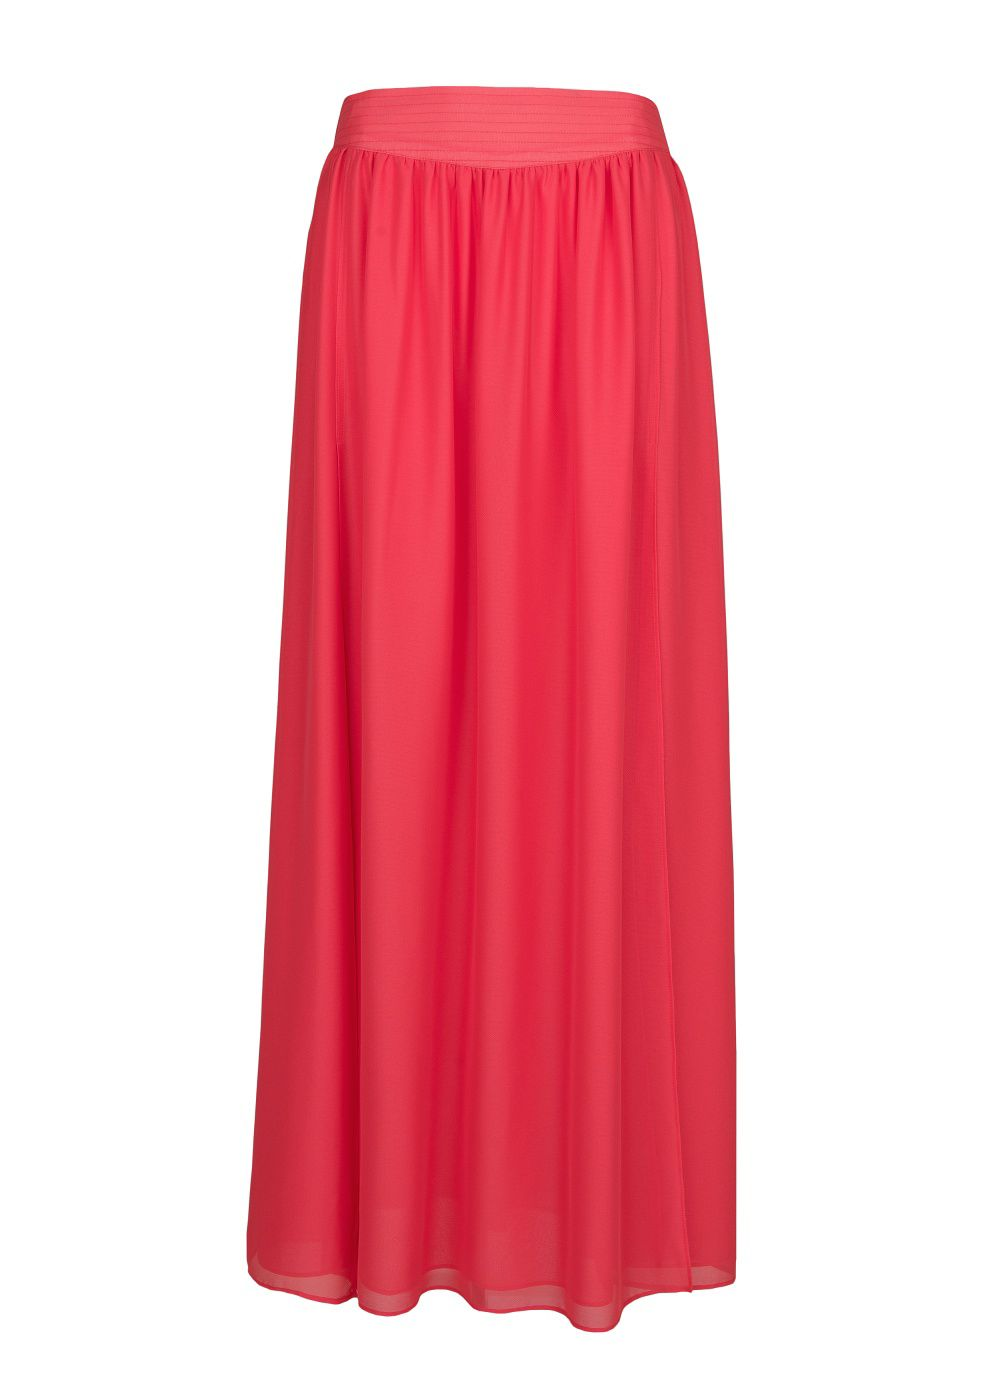 Cut-out long skirt